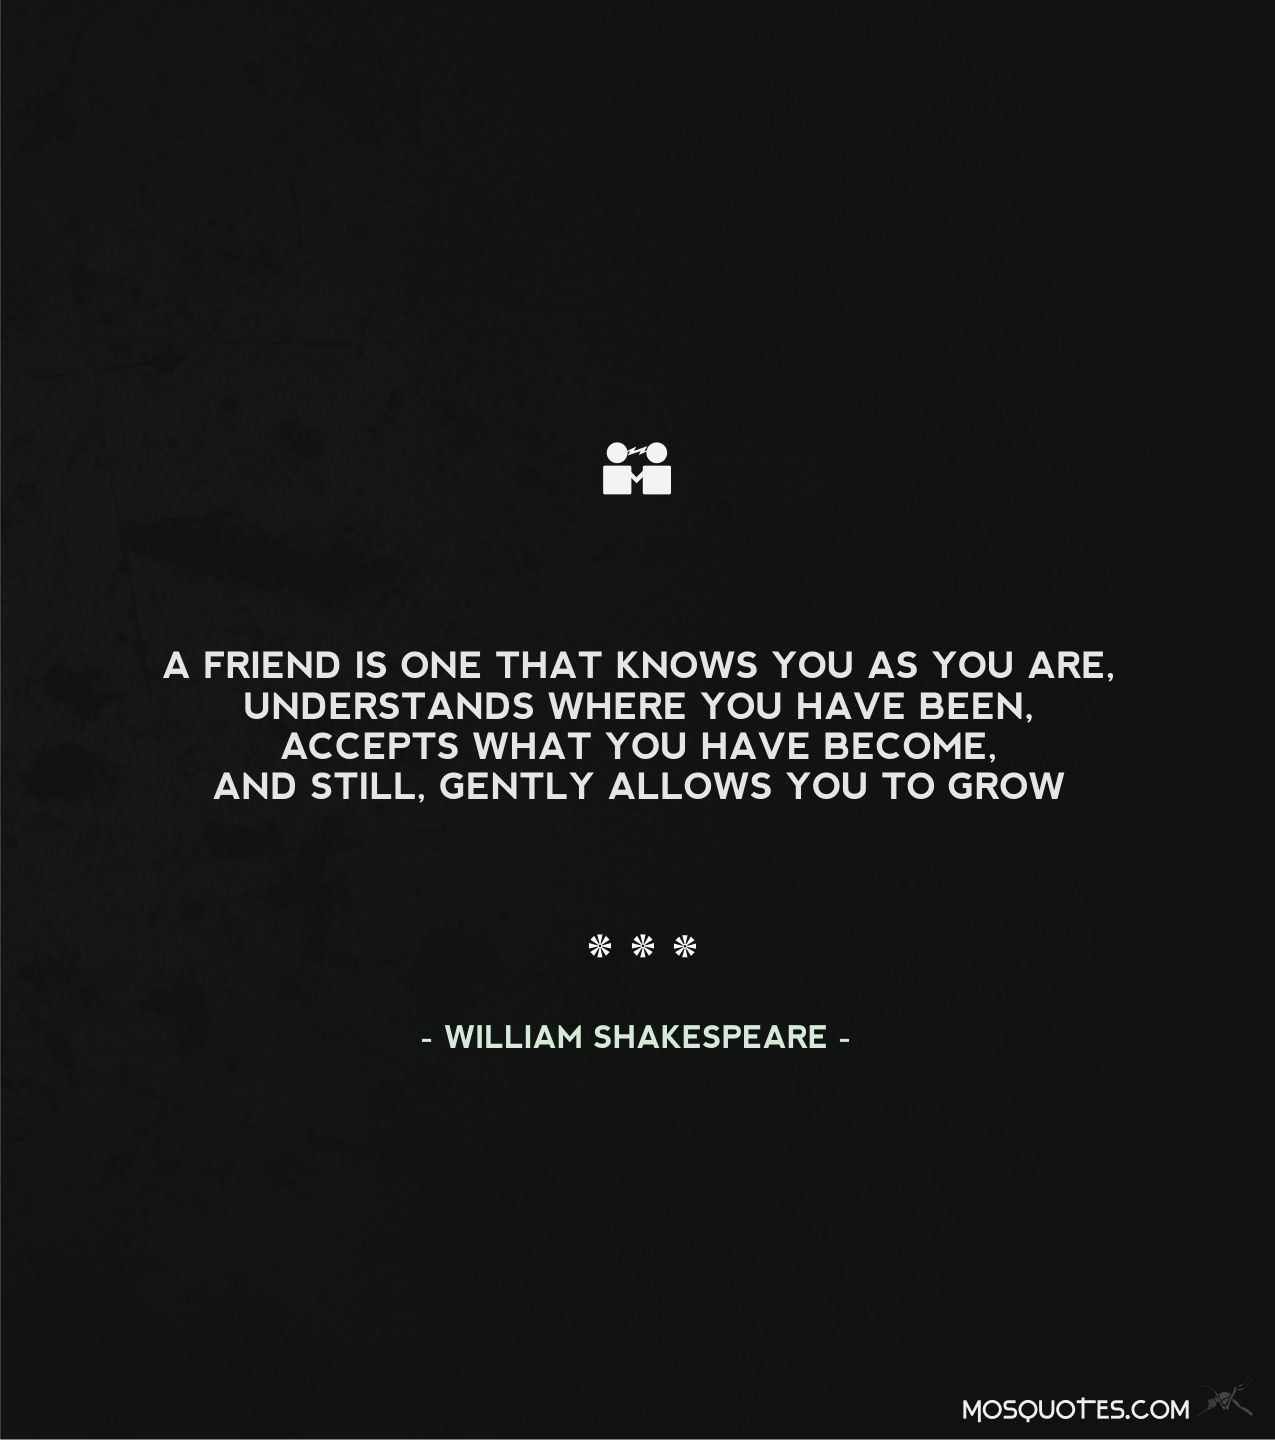 William Shakespeare Quotes About Friendship Famous Quotes About Friendship A Friend Is One That Knows You As